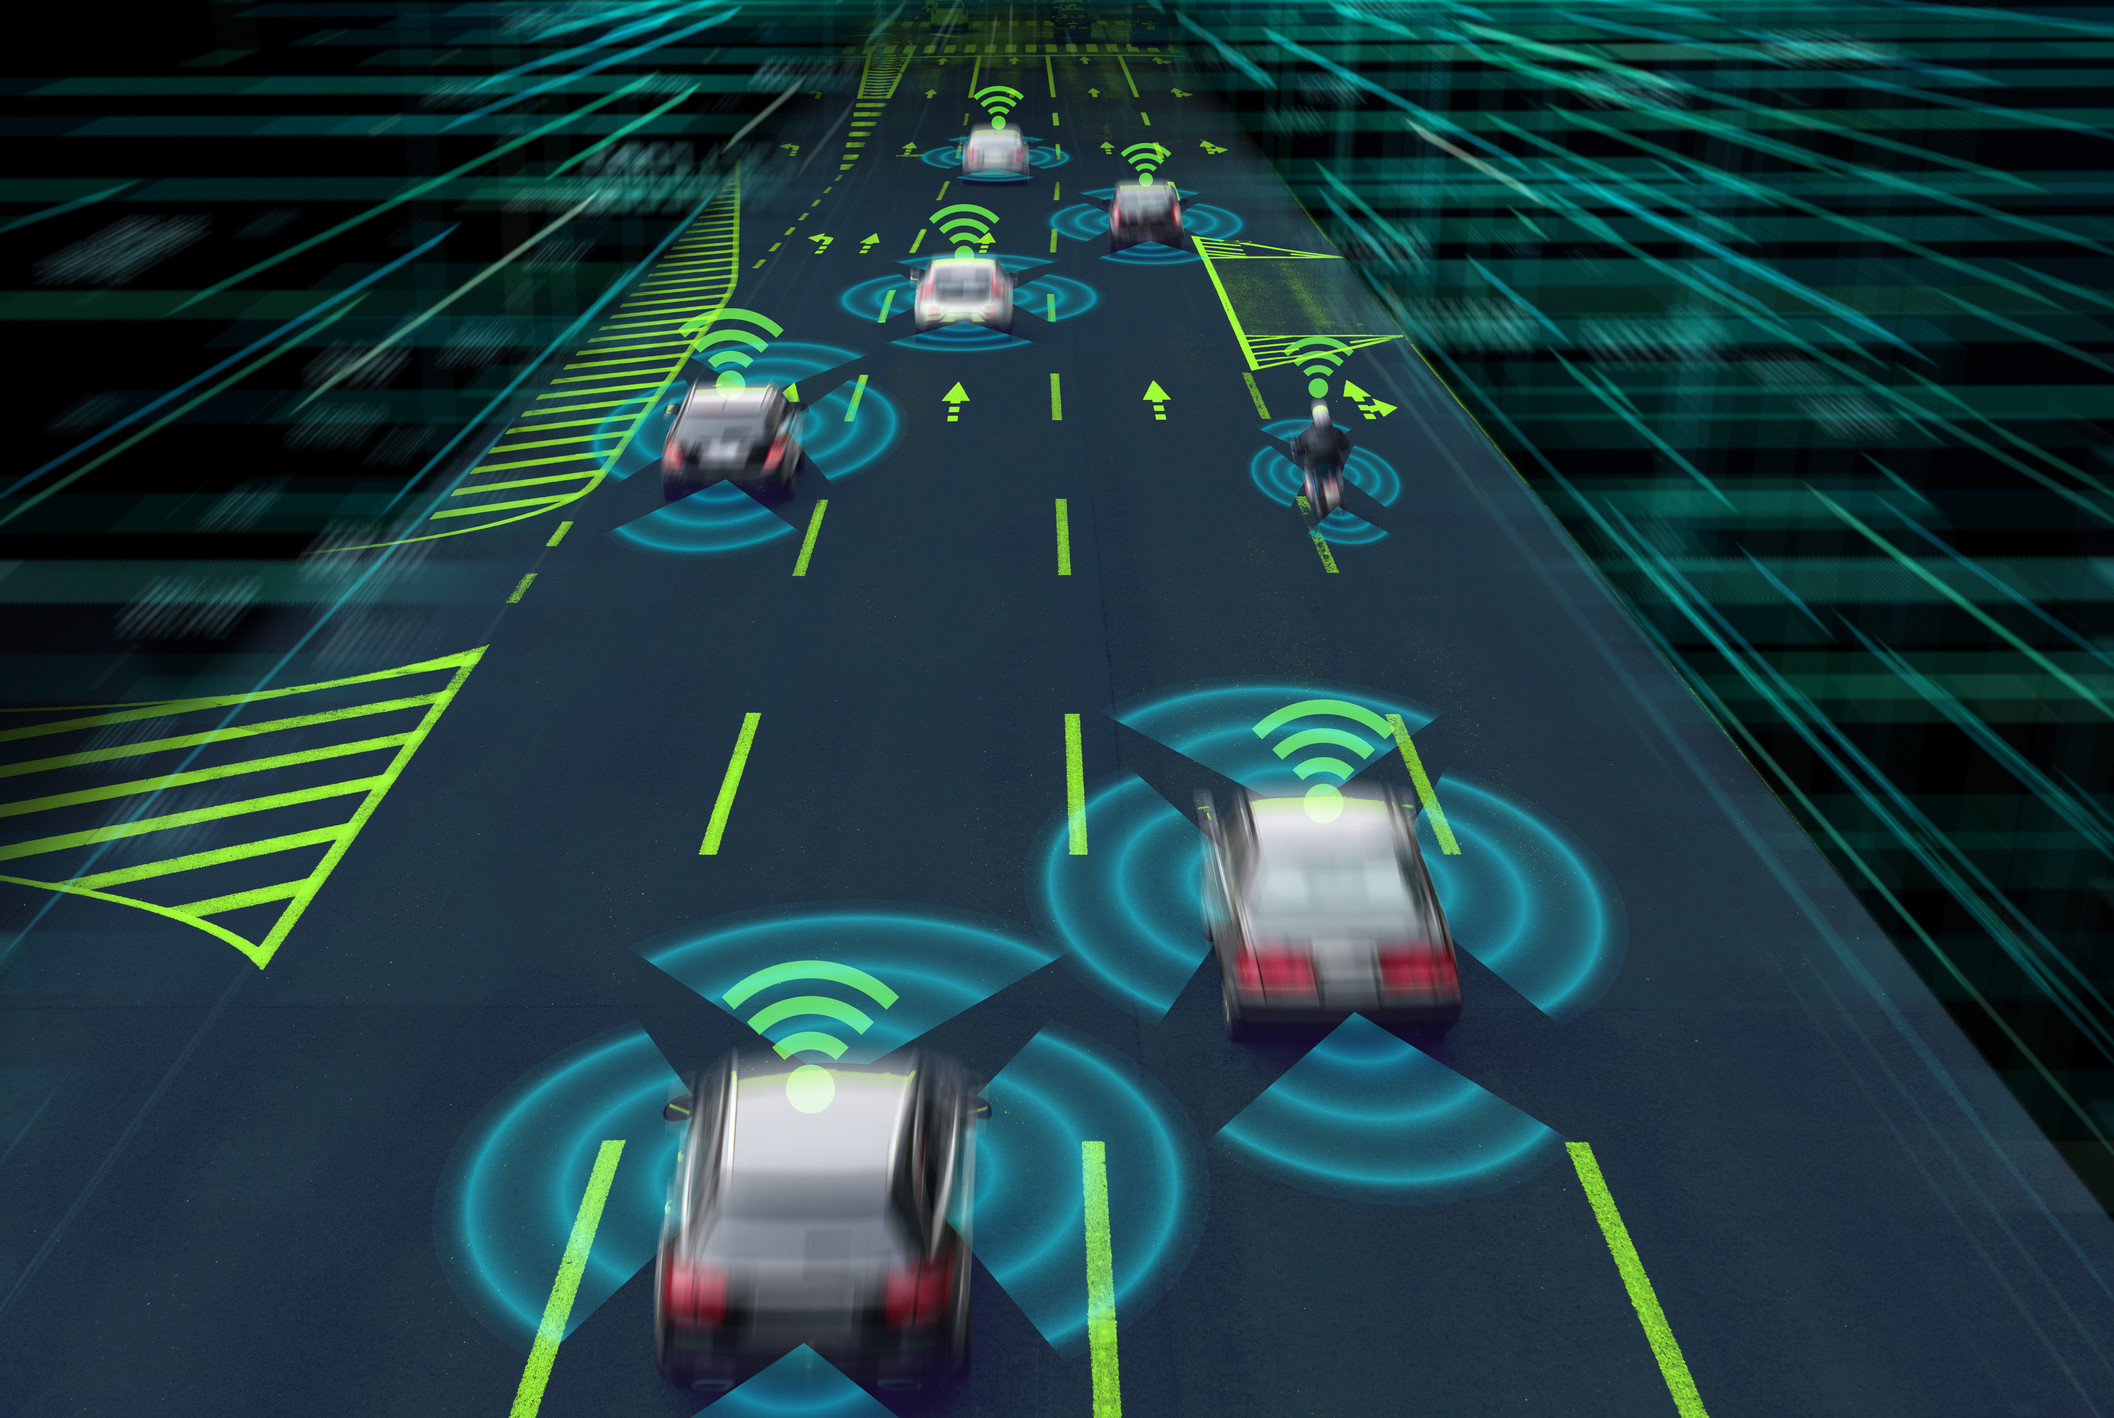 The autonomous car dilemma is one example of the difficulty of assigning responsibility across interconnecting digital systems